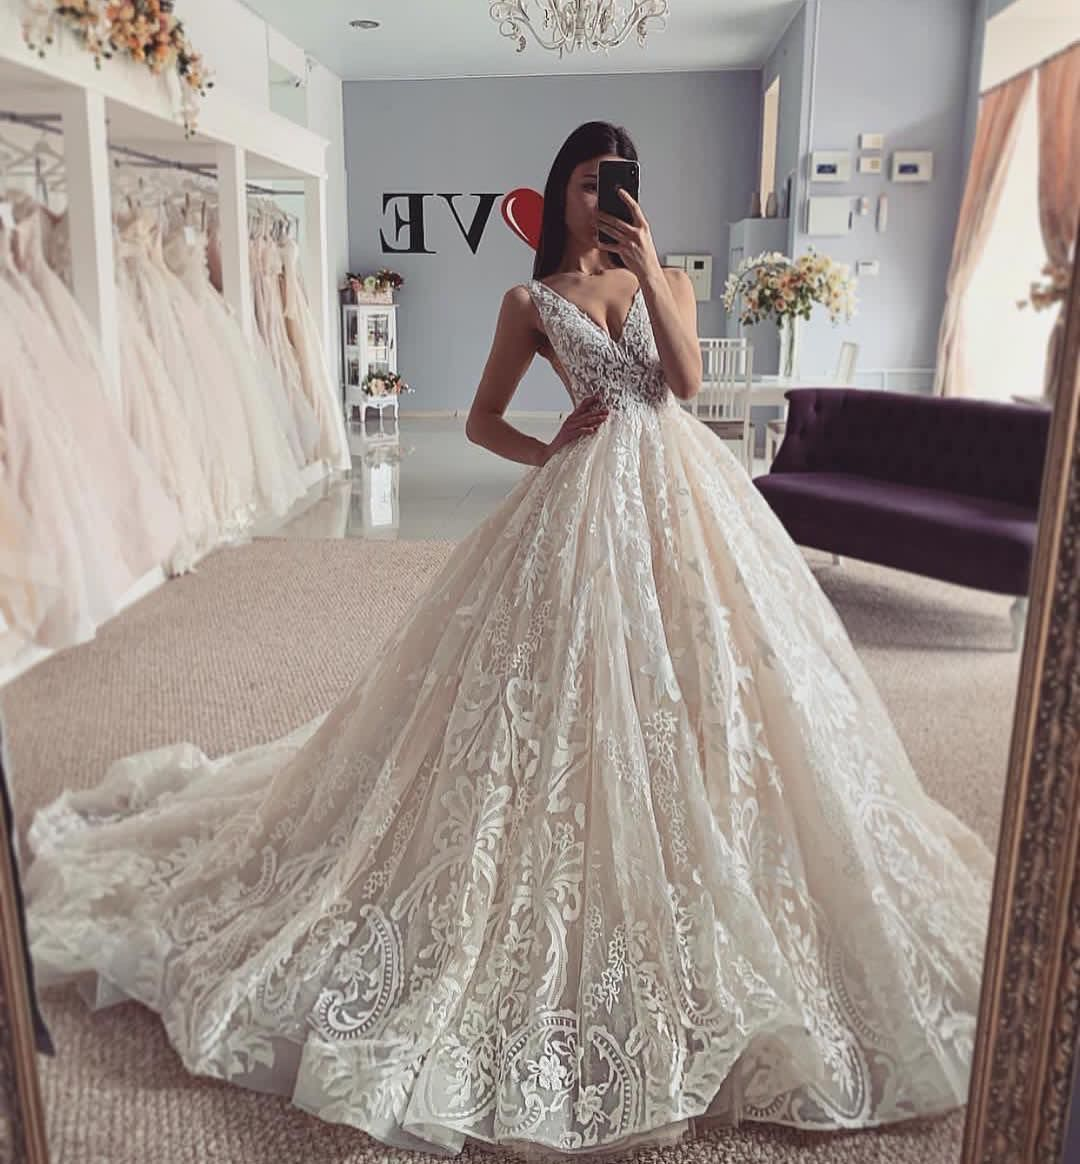 Haute Couture Inspiration On Instagram Bridal Dress Pick Your Best Bride Style 1 2 3 Ball Gown Wedding Dress Ball Gowns Wedding Women Wedding Guest Dresses [ 1164 x 1080 Pixel ]